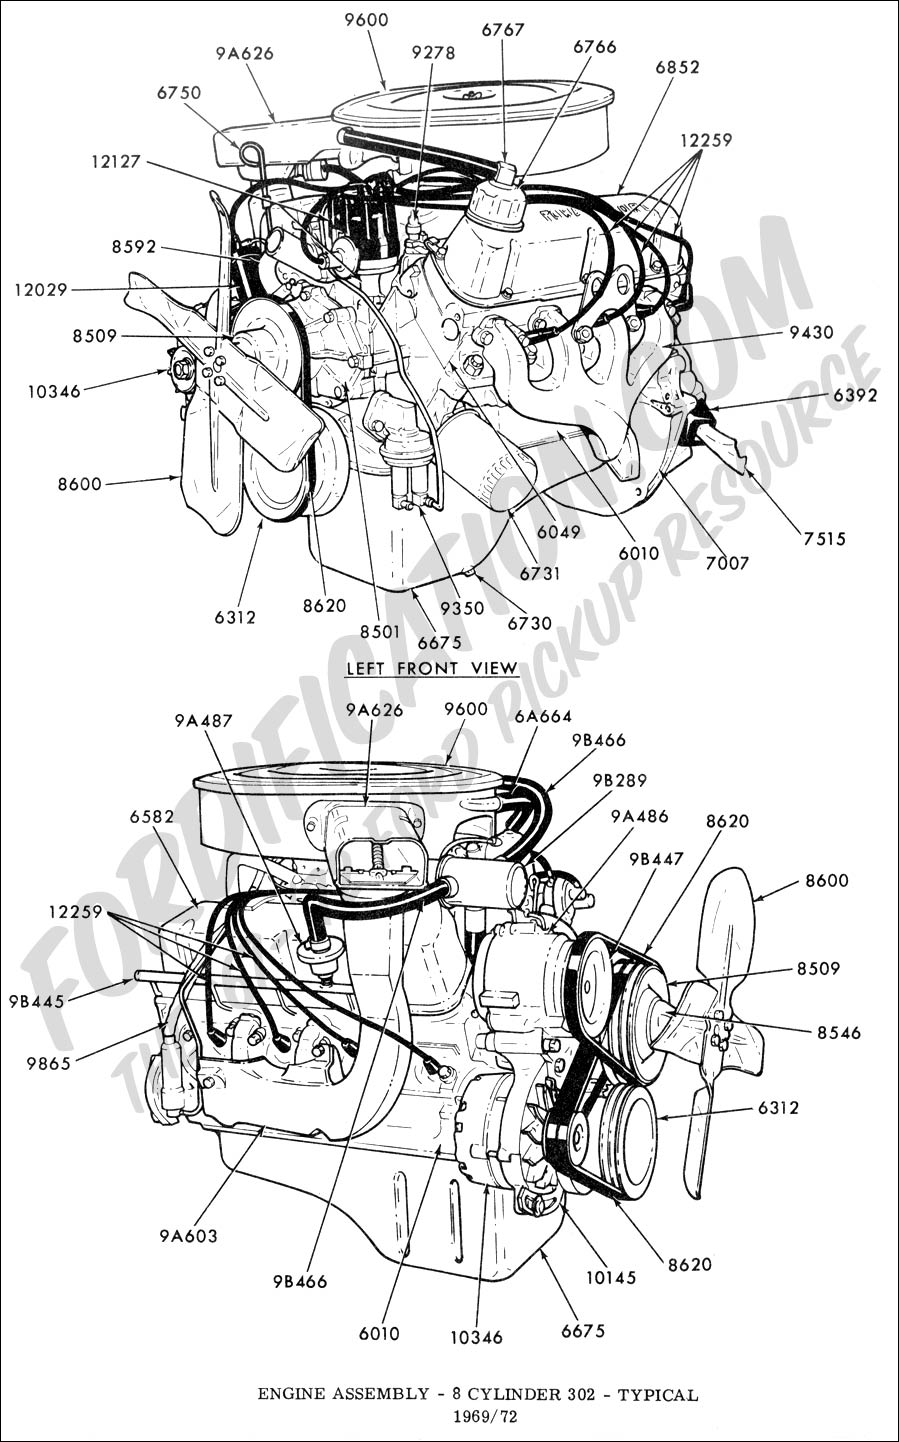 68 ford 302 engine diagram free download wiring diagram u2022 rh tinyforge co Ford F-150 4.6 Engine Diagram Ford F-150 4.6 Engine Diagram